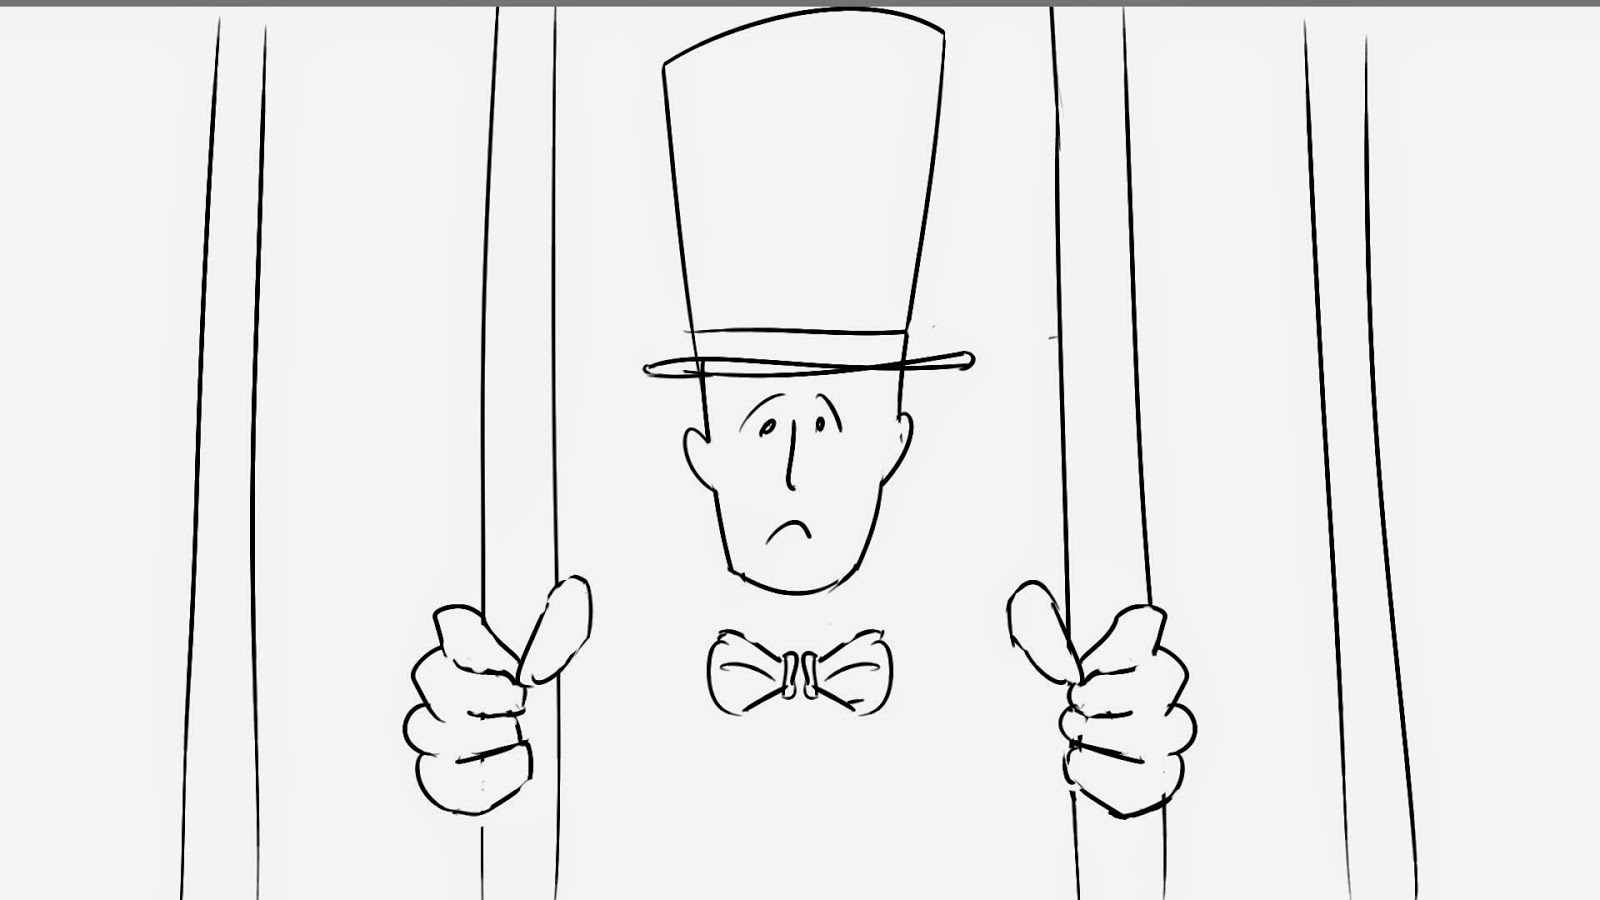 man in top hat behind bars